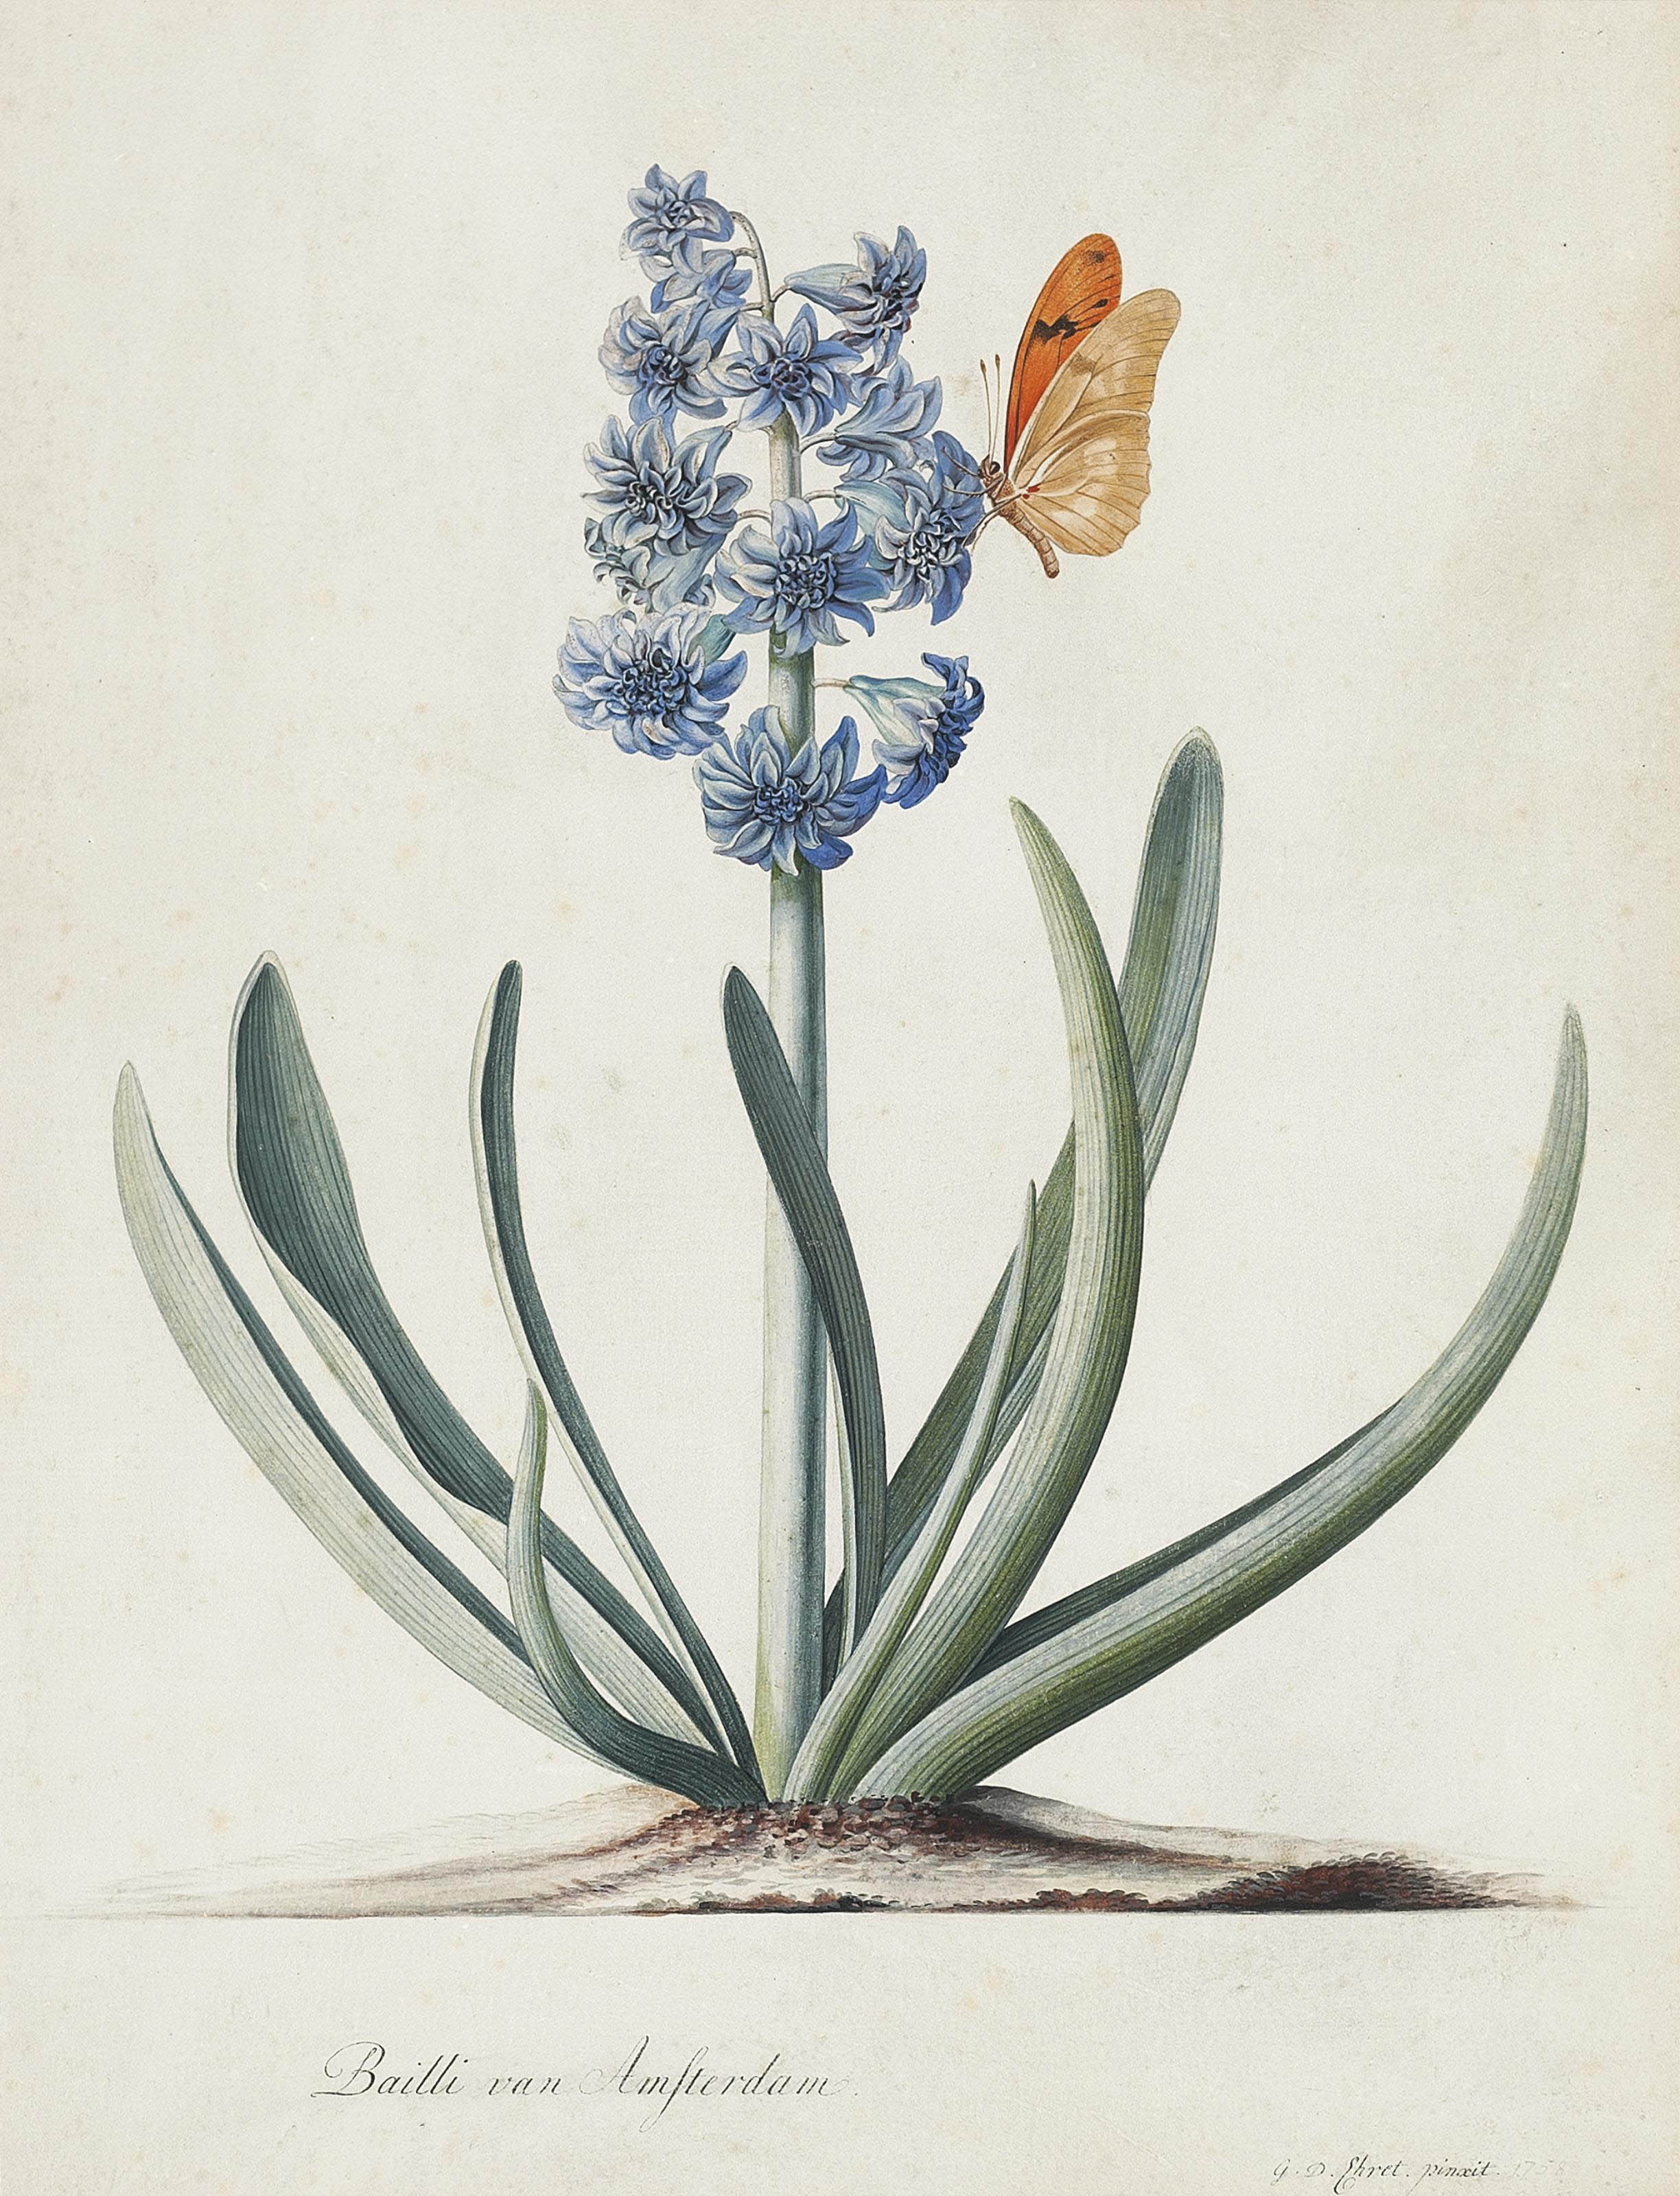 A double blue hyacinth (Hyacinthus orientalis) with a butterfly